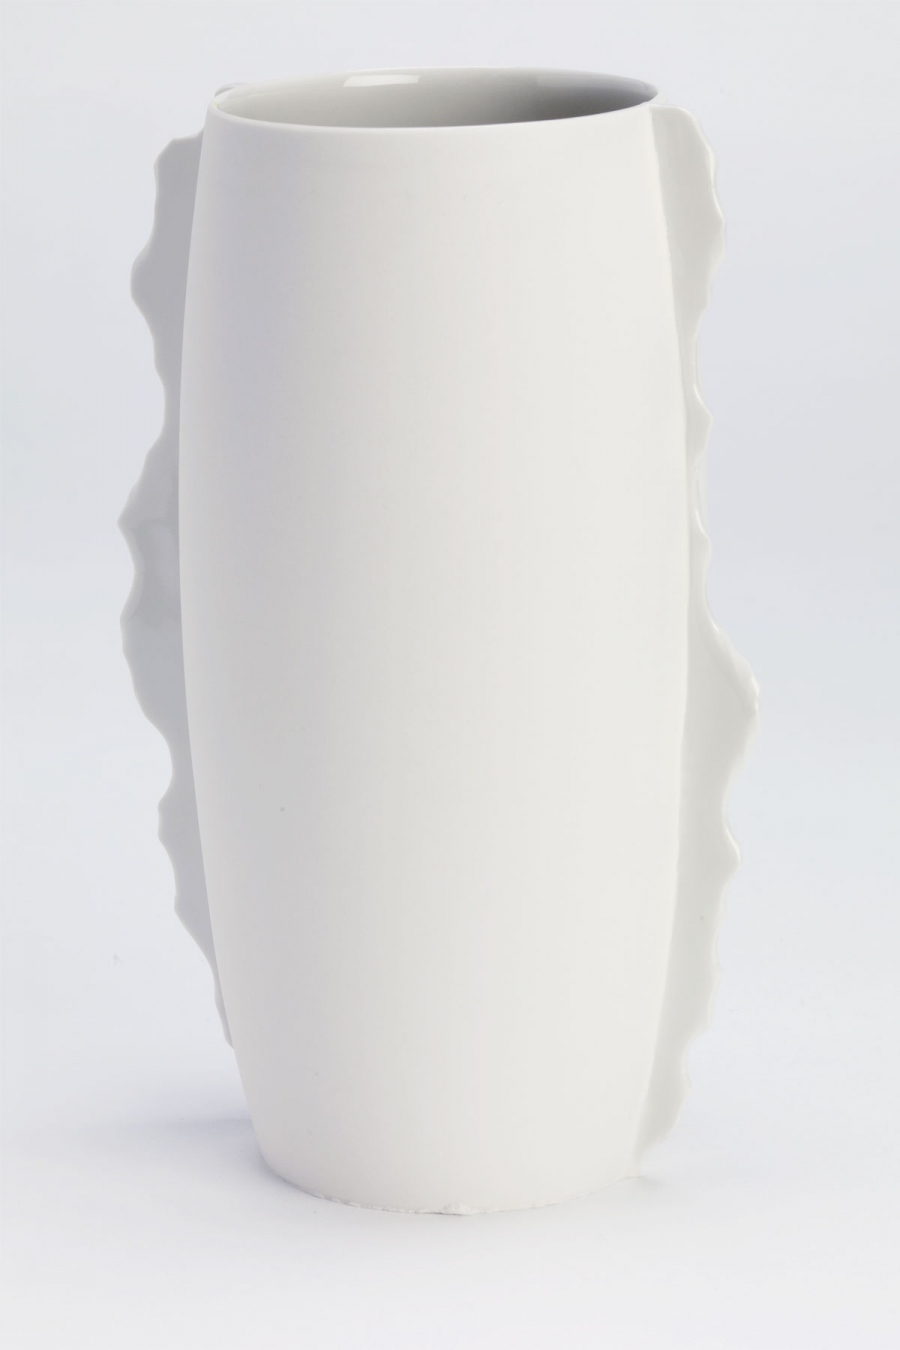 Vase with Seams White